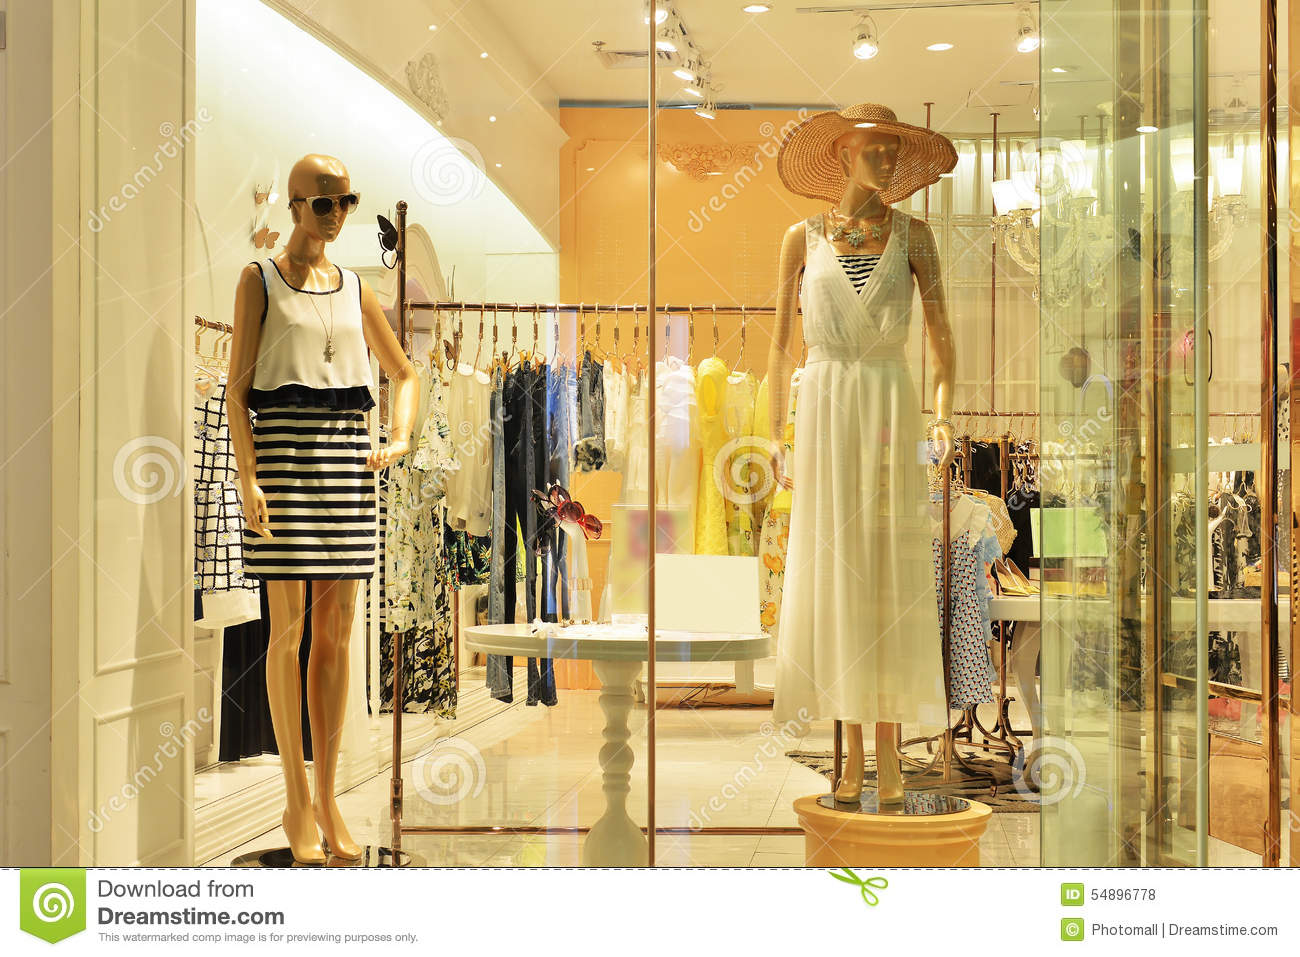 Mannequins In Women's Dress Shop Window Stock Photo - Image: 54896778